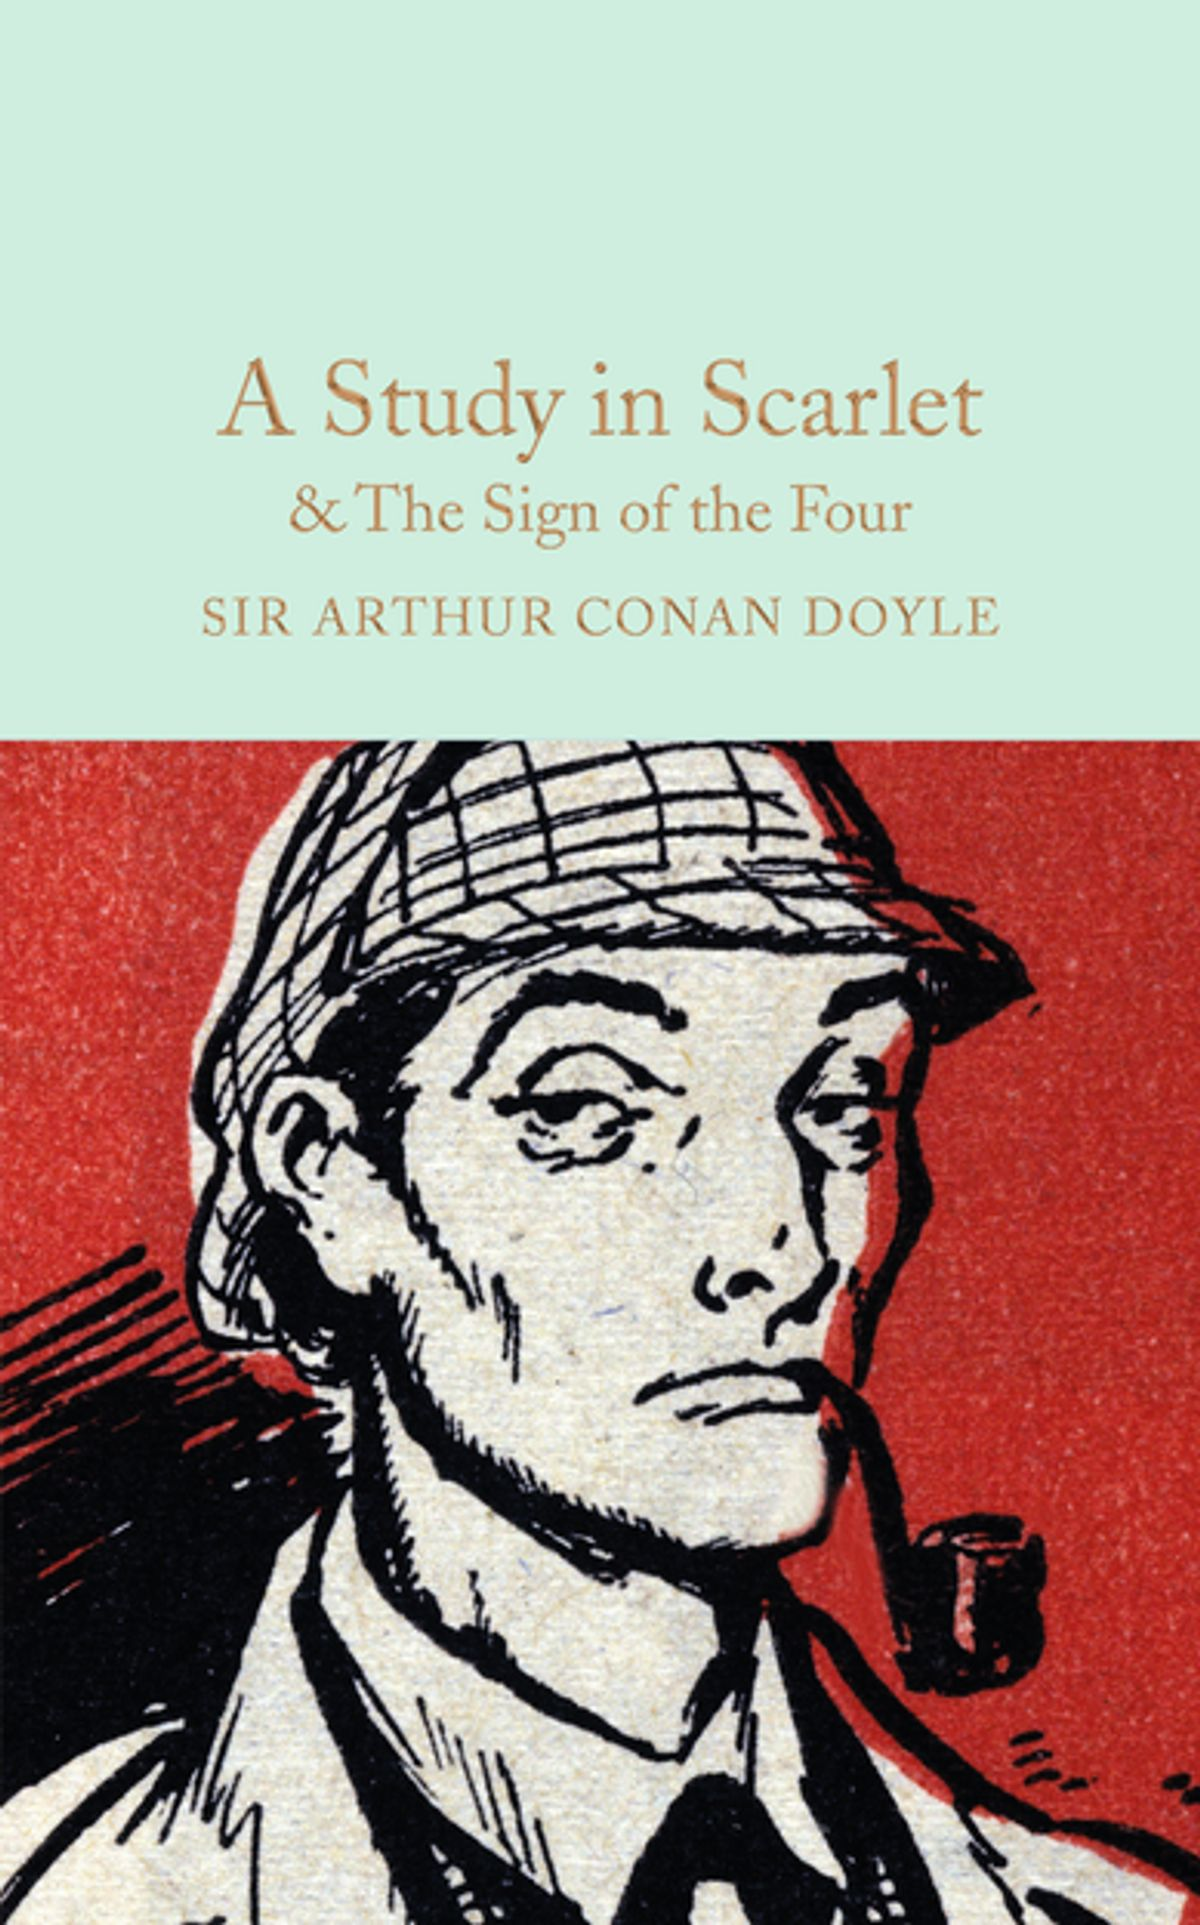 a comparison of two detective novels a study in scarlet by sir arthur conan doyle and the mysterious Sir arthur conan doyle, the prolific 18 th century writer, will always be best known for his creation of the iconic character sherlock holmes this acclaimed character has been reimagined in literary works outside of conan doyle's original canon as well through television and full feature films.